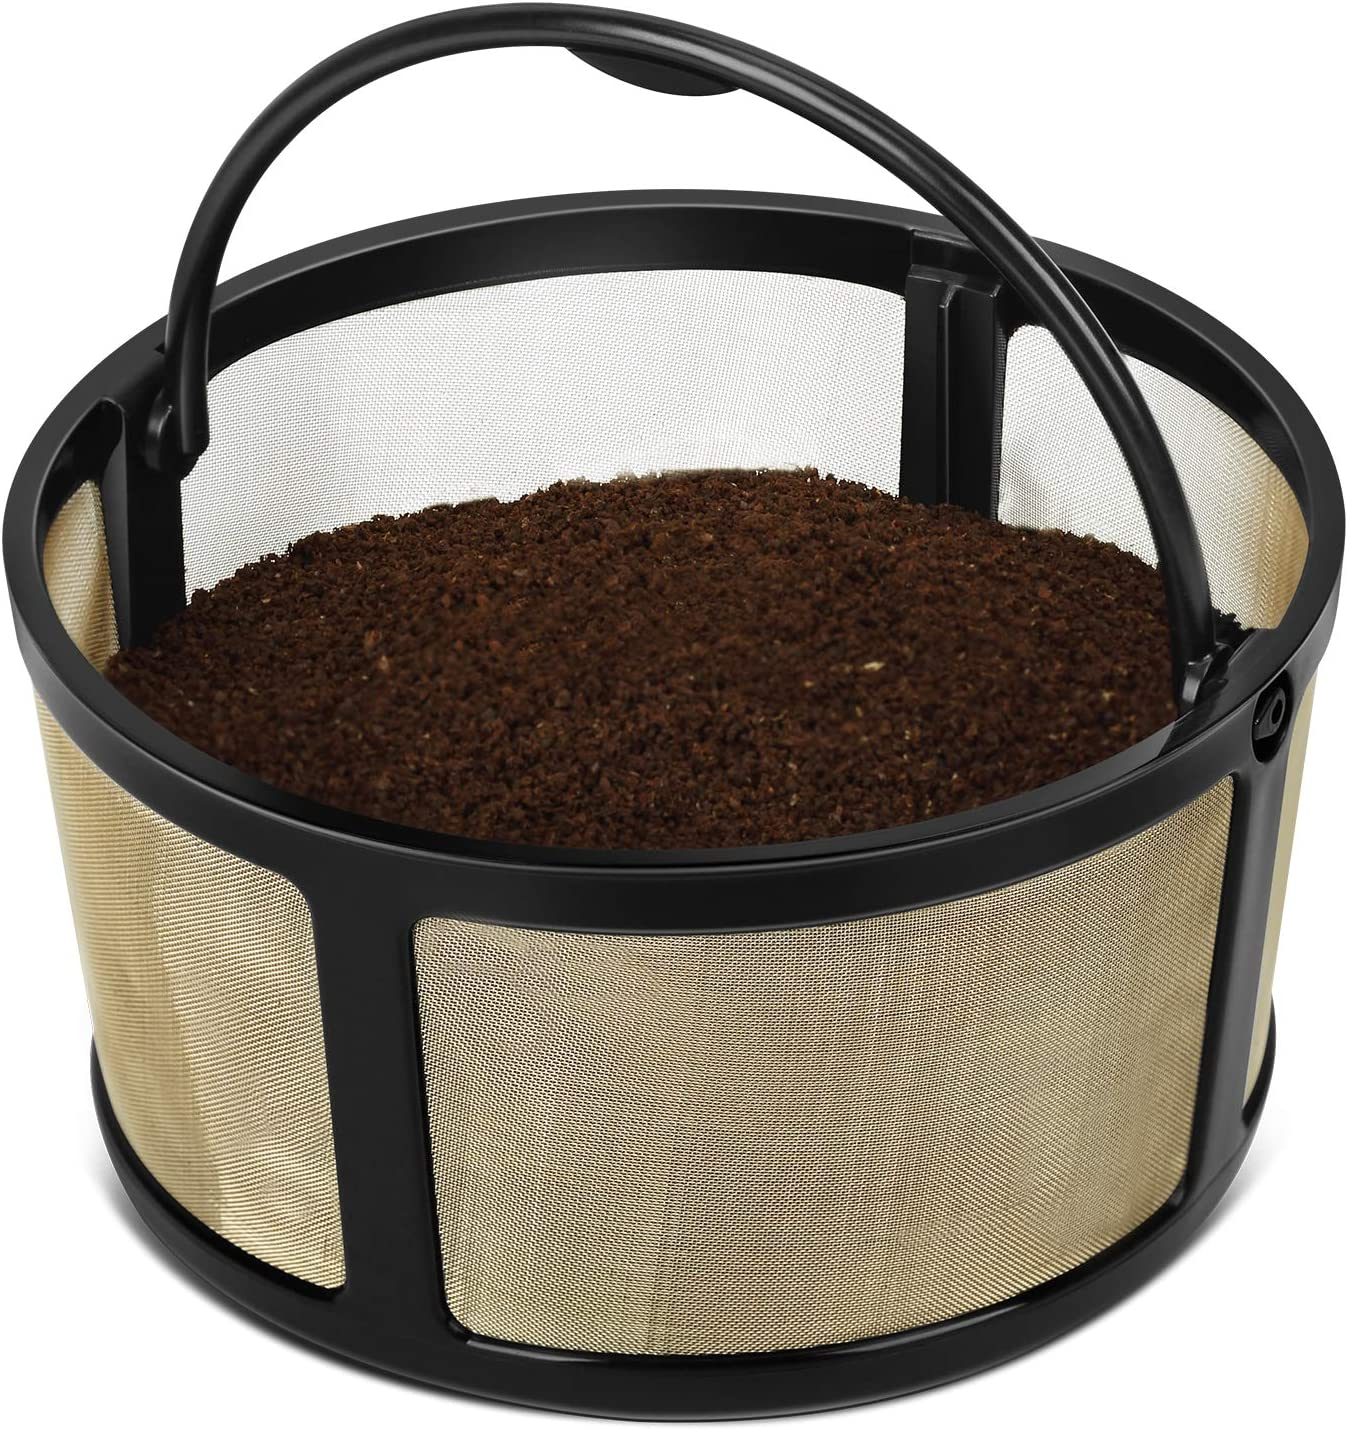 Reusable Keurig K Discount mail order Duo Outstanding Coffee Filter for Only Essentials K-Duo an